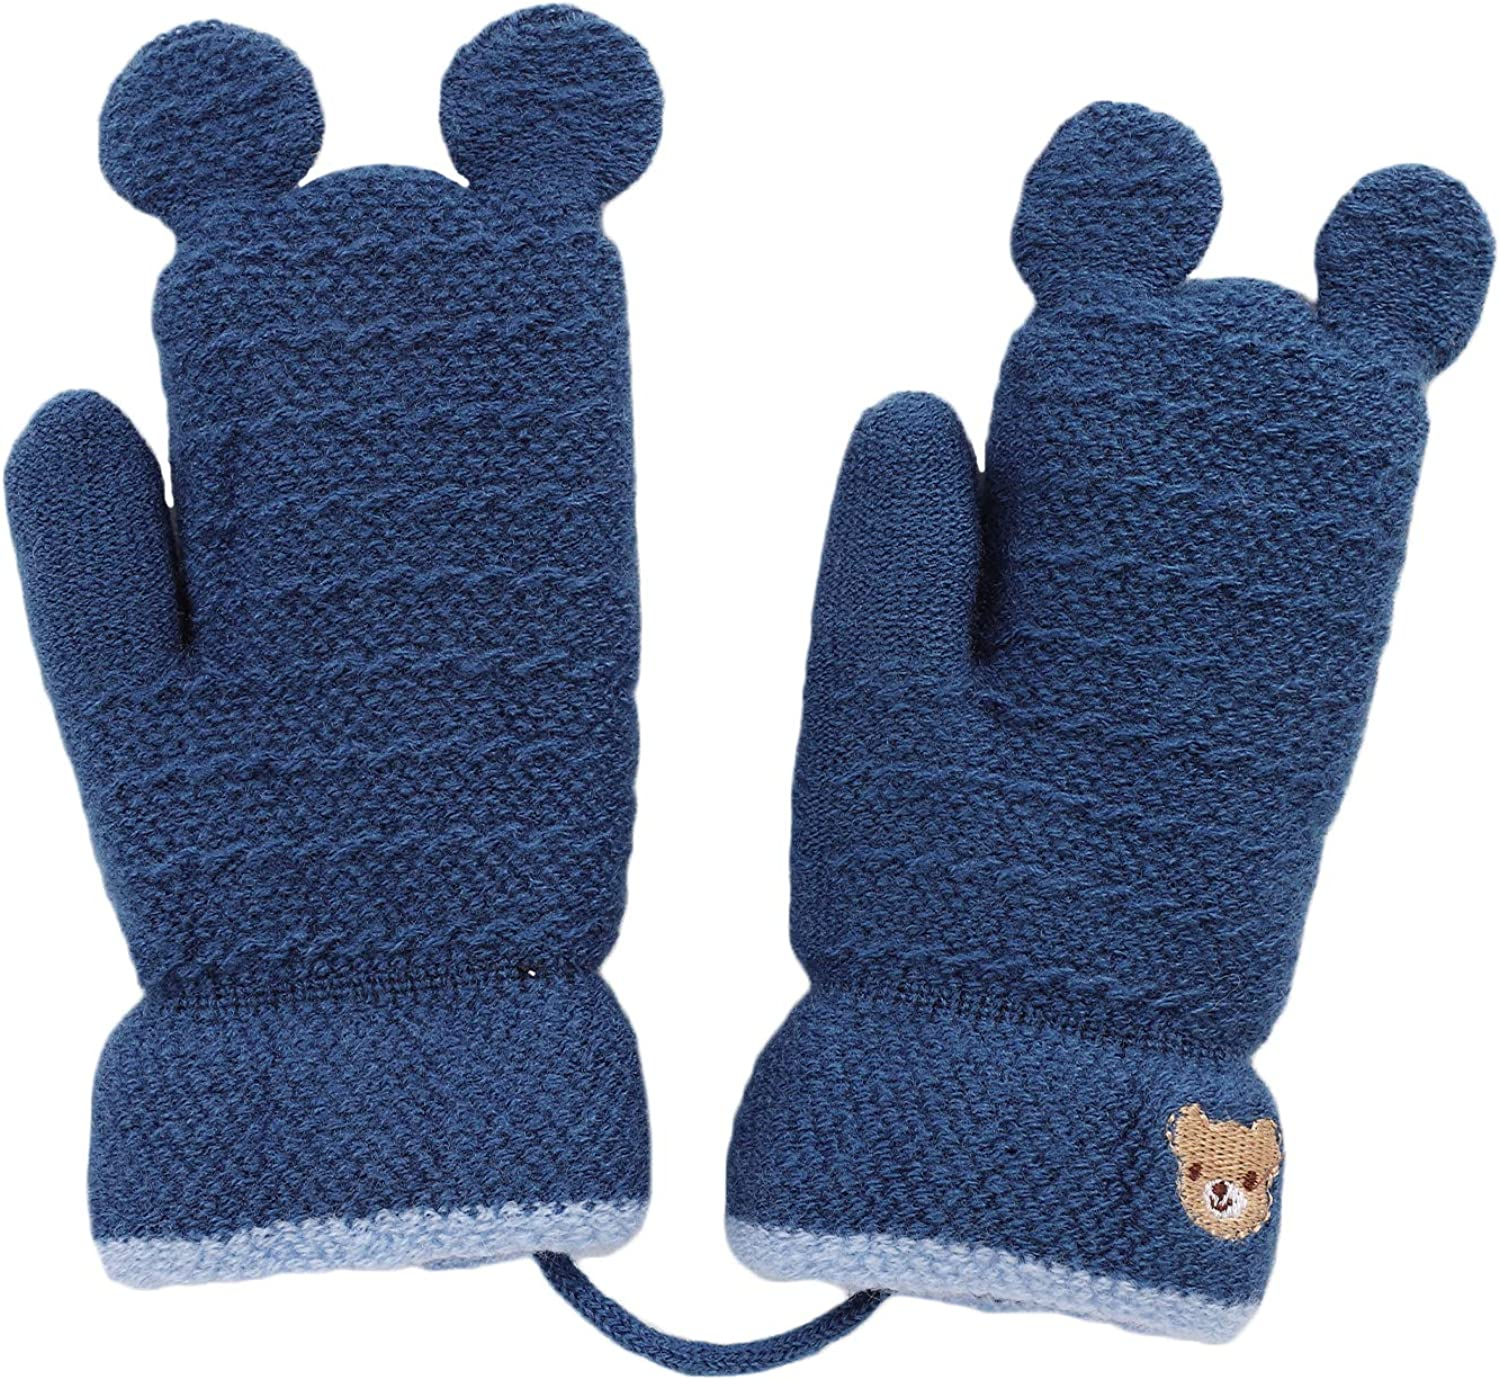 Kids Cartoon knitted Gloves Cute Bear Hang Neck Mittens Thicken Winter Warm Gloves with Anti-lost String Full Fingers Baby Boy Girl Mitten Thermal Plush Outdoor Hand Warmer